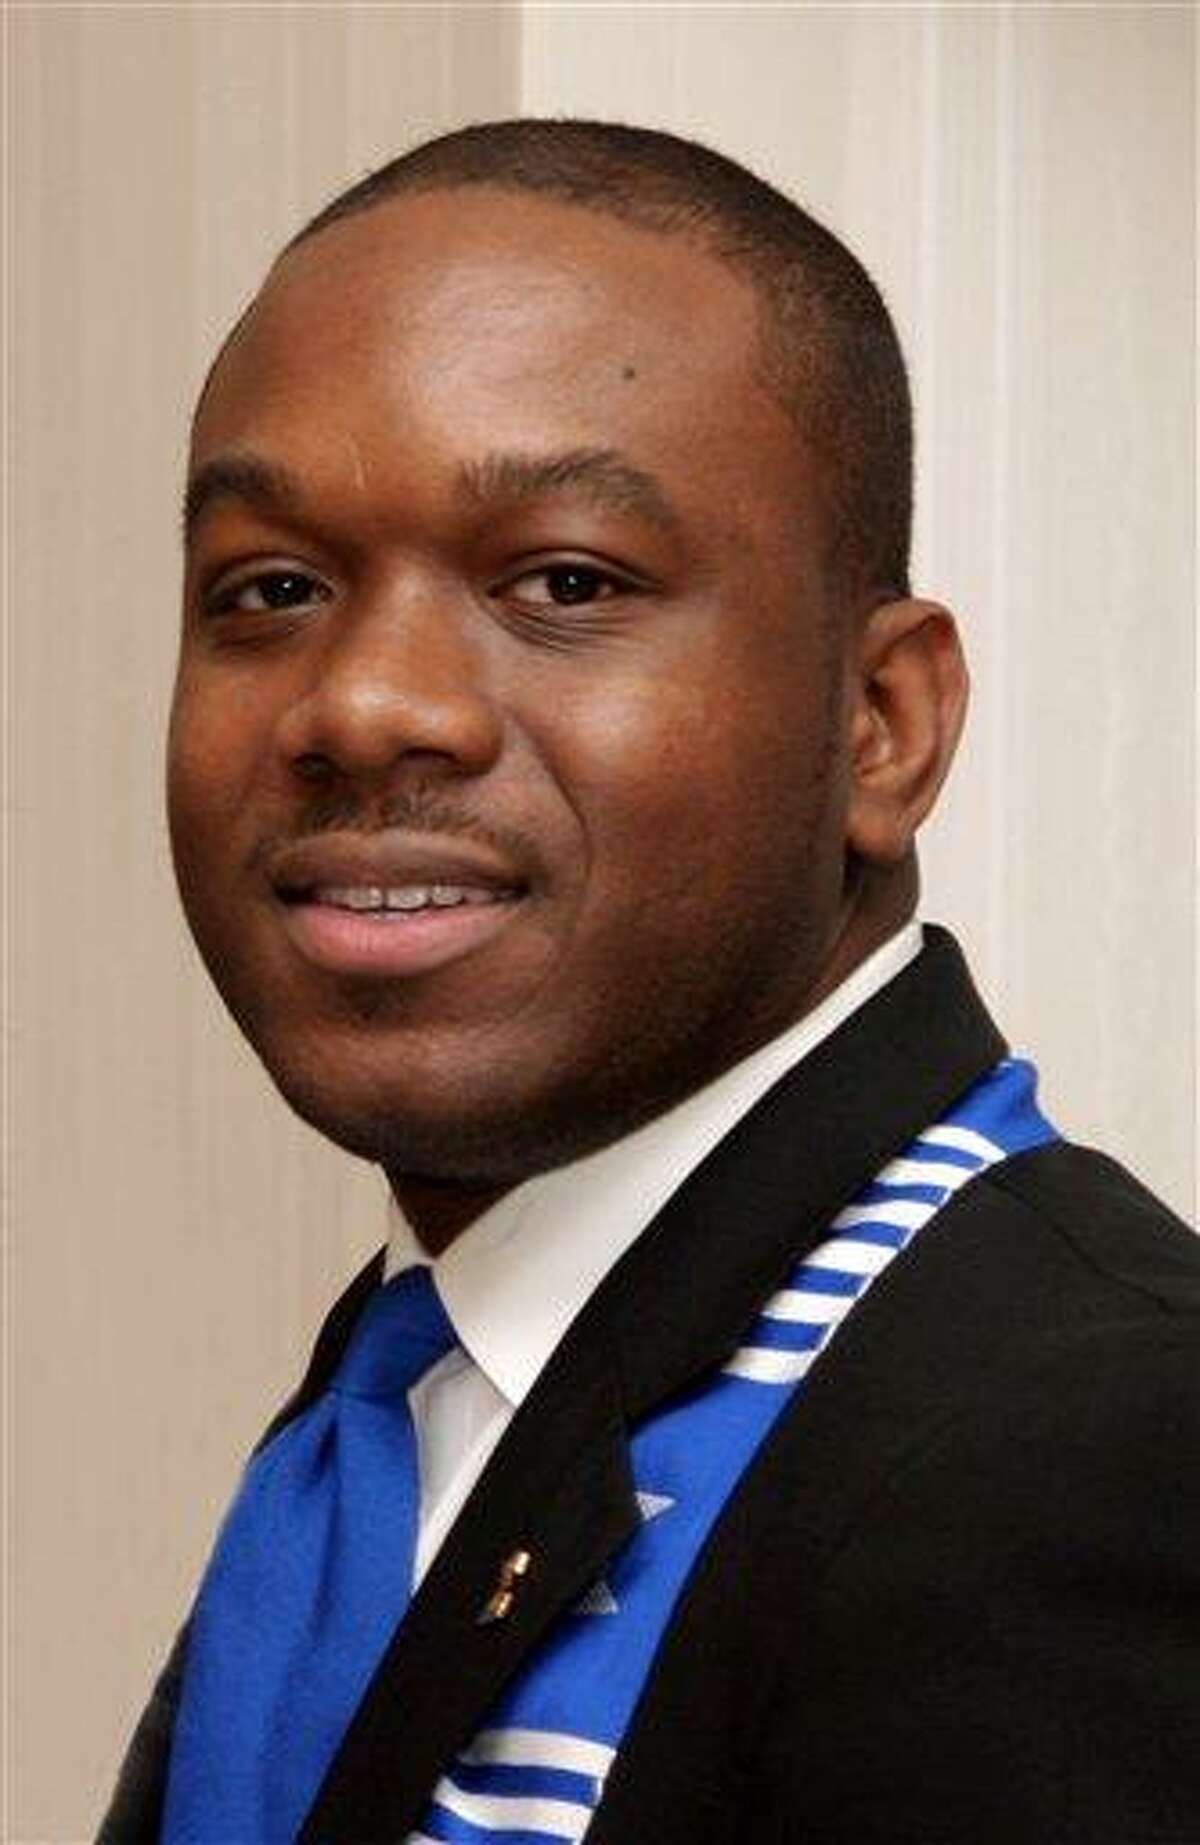 This Jan. 20, 2007 photo shows Marco McMillian, 34, a candidate for mayor of Clarksdale, Miss., who was found dead on the Mississippi River levee Wednesday, Feb. 27, 2013 between Sherard and Rena Lara, Miss. Authorities say the case is being investigated as a homicide. McMillian had served as international executive director of Phi Beta Sigma Fraternity, Inc. His campaign said he may have been the first openly gay man to be a viable candidate for public office in Mississippi. (AP Photo/The Clarksdale Press Register, Troy Catchings)